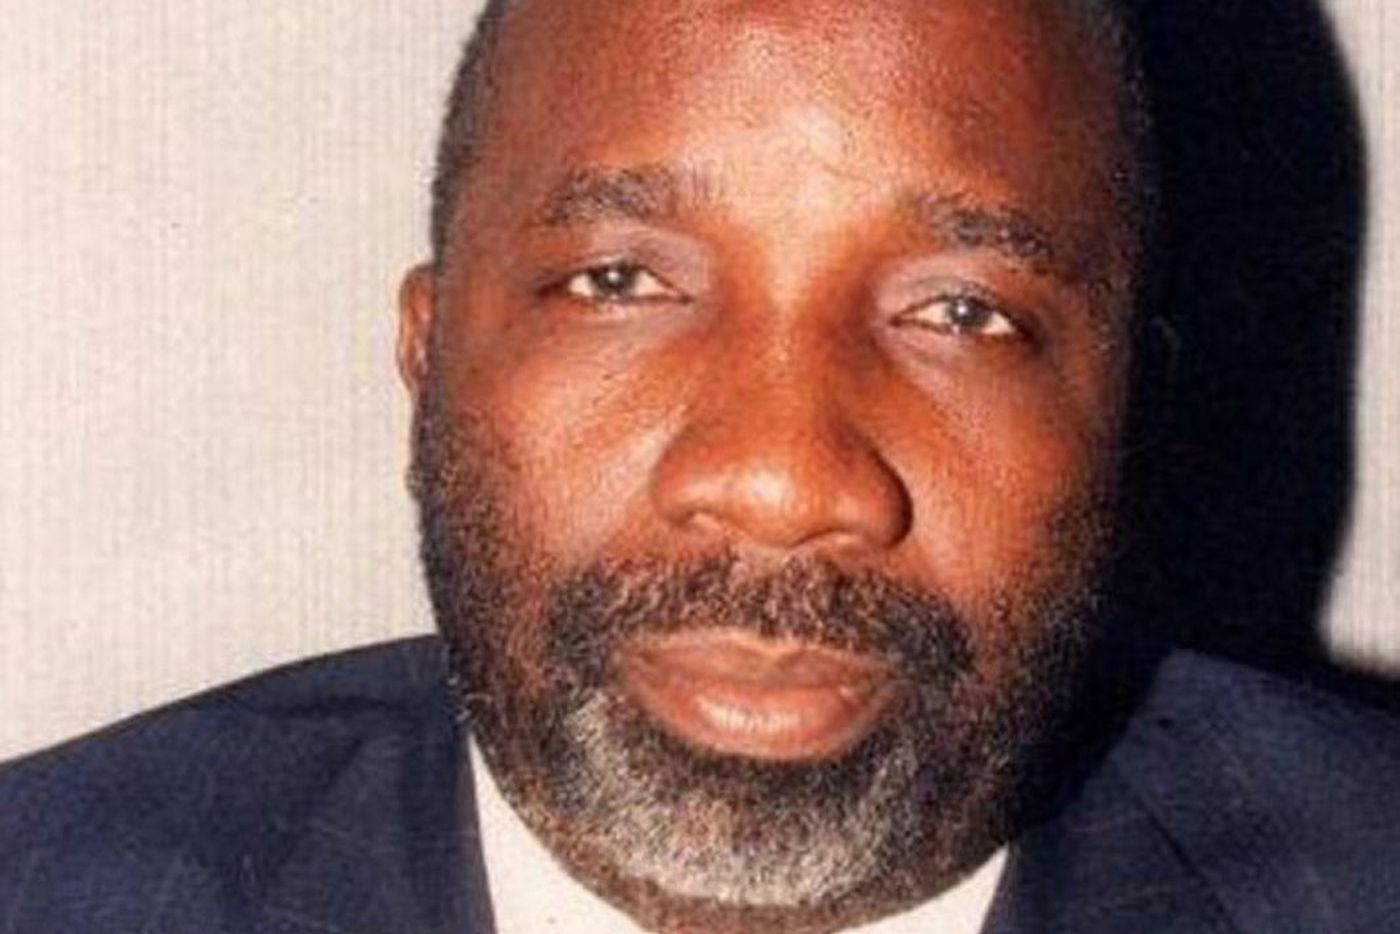 A Delaware County man, who served throughout the '90s as a top lieutenant to Liberian warlord Charles Taylor and whose prosecution for U.S. immigration violations in 2018 drew headlines across the globe, died Sunday from complications related to the coronavirus. Jucontee Thomas Woewiyu, 74, of Collingdale had spent more than a week in Bryn Mawr Hospital battling the disease, family members said.